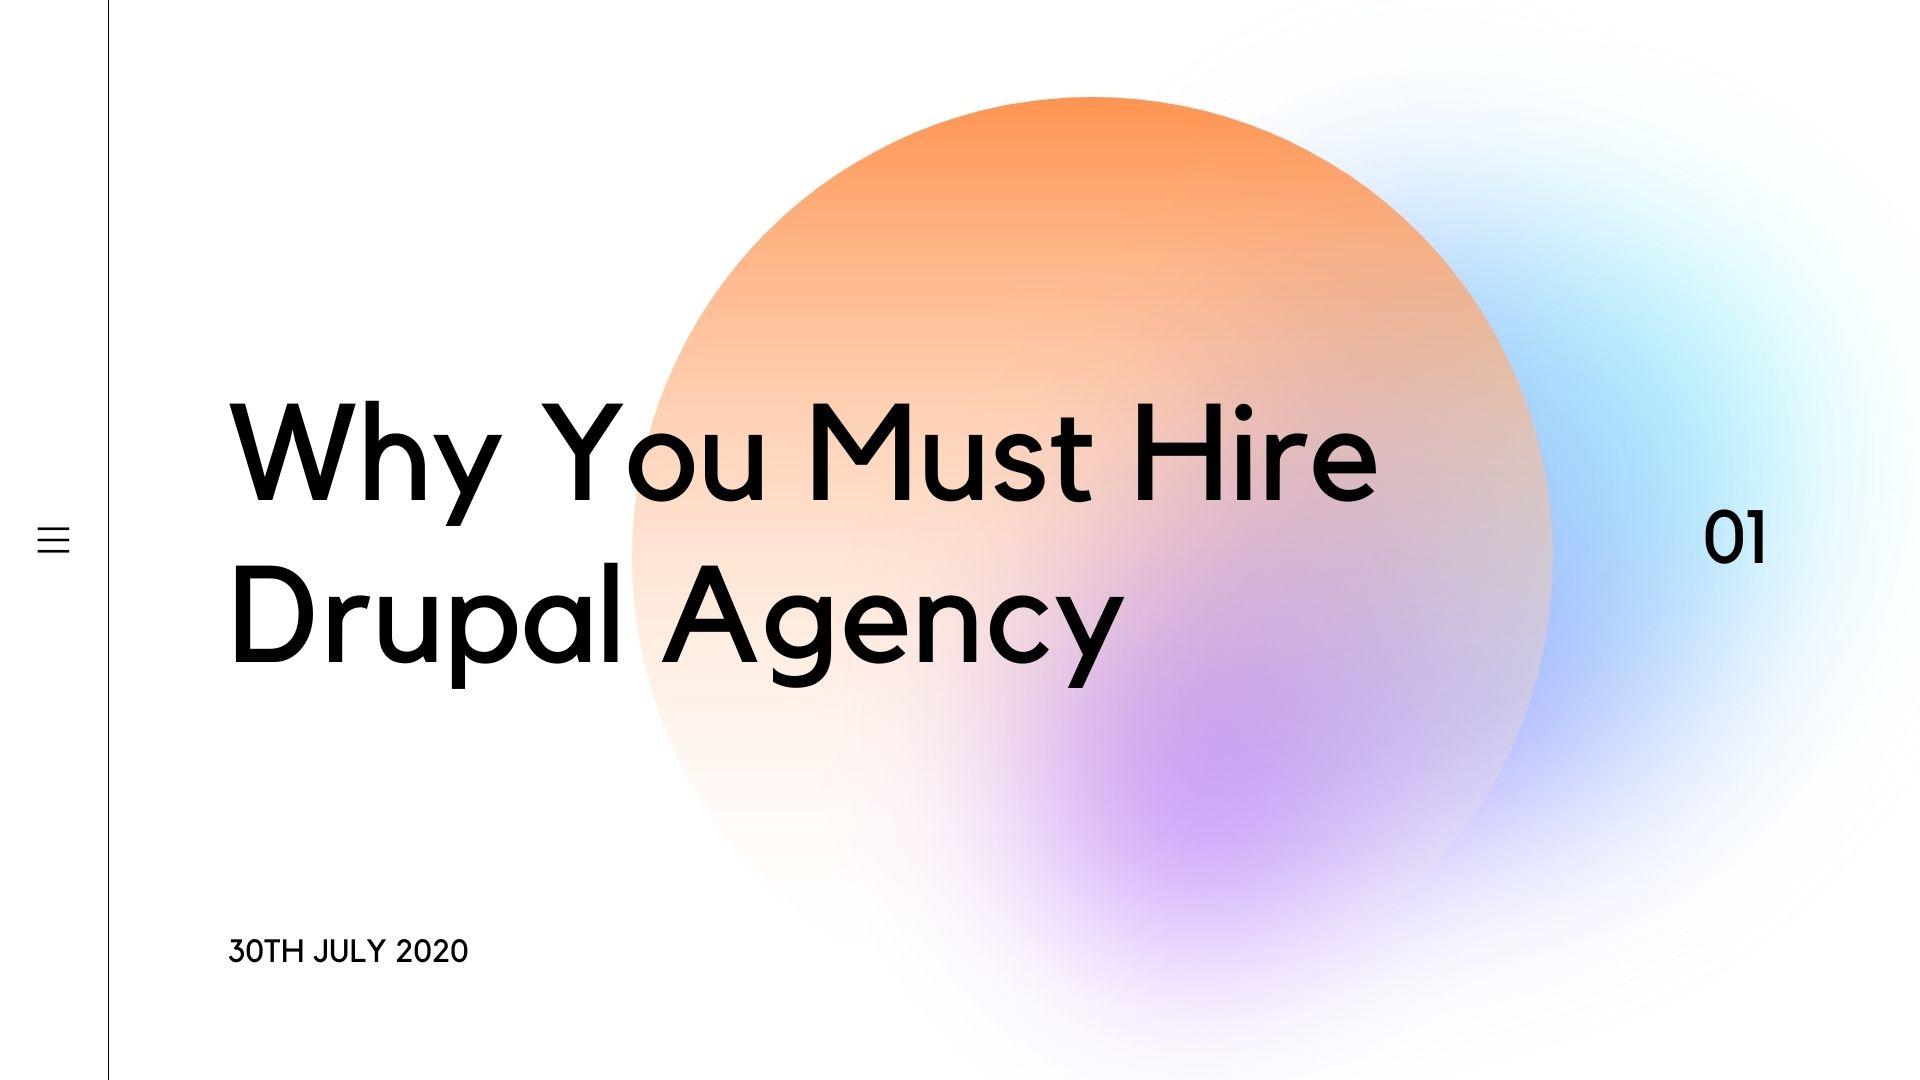 why you mus hire drupal agency